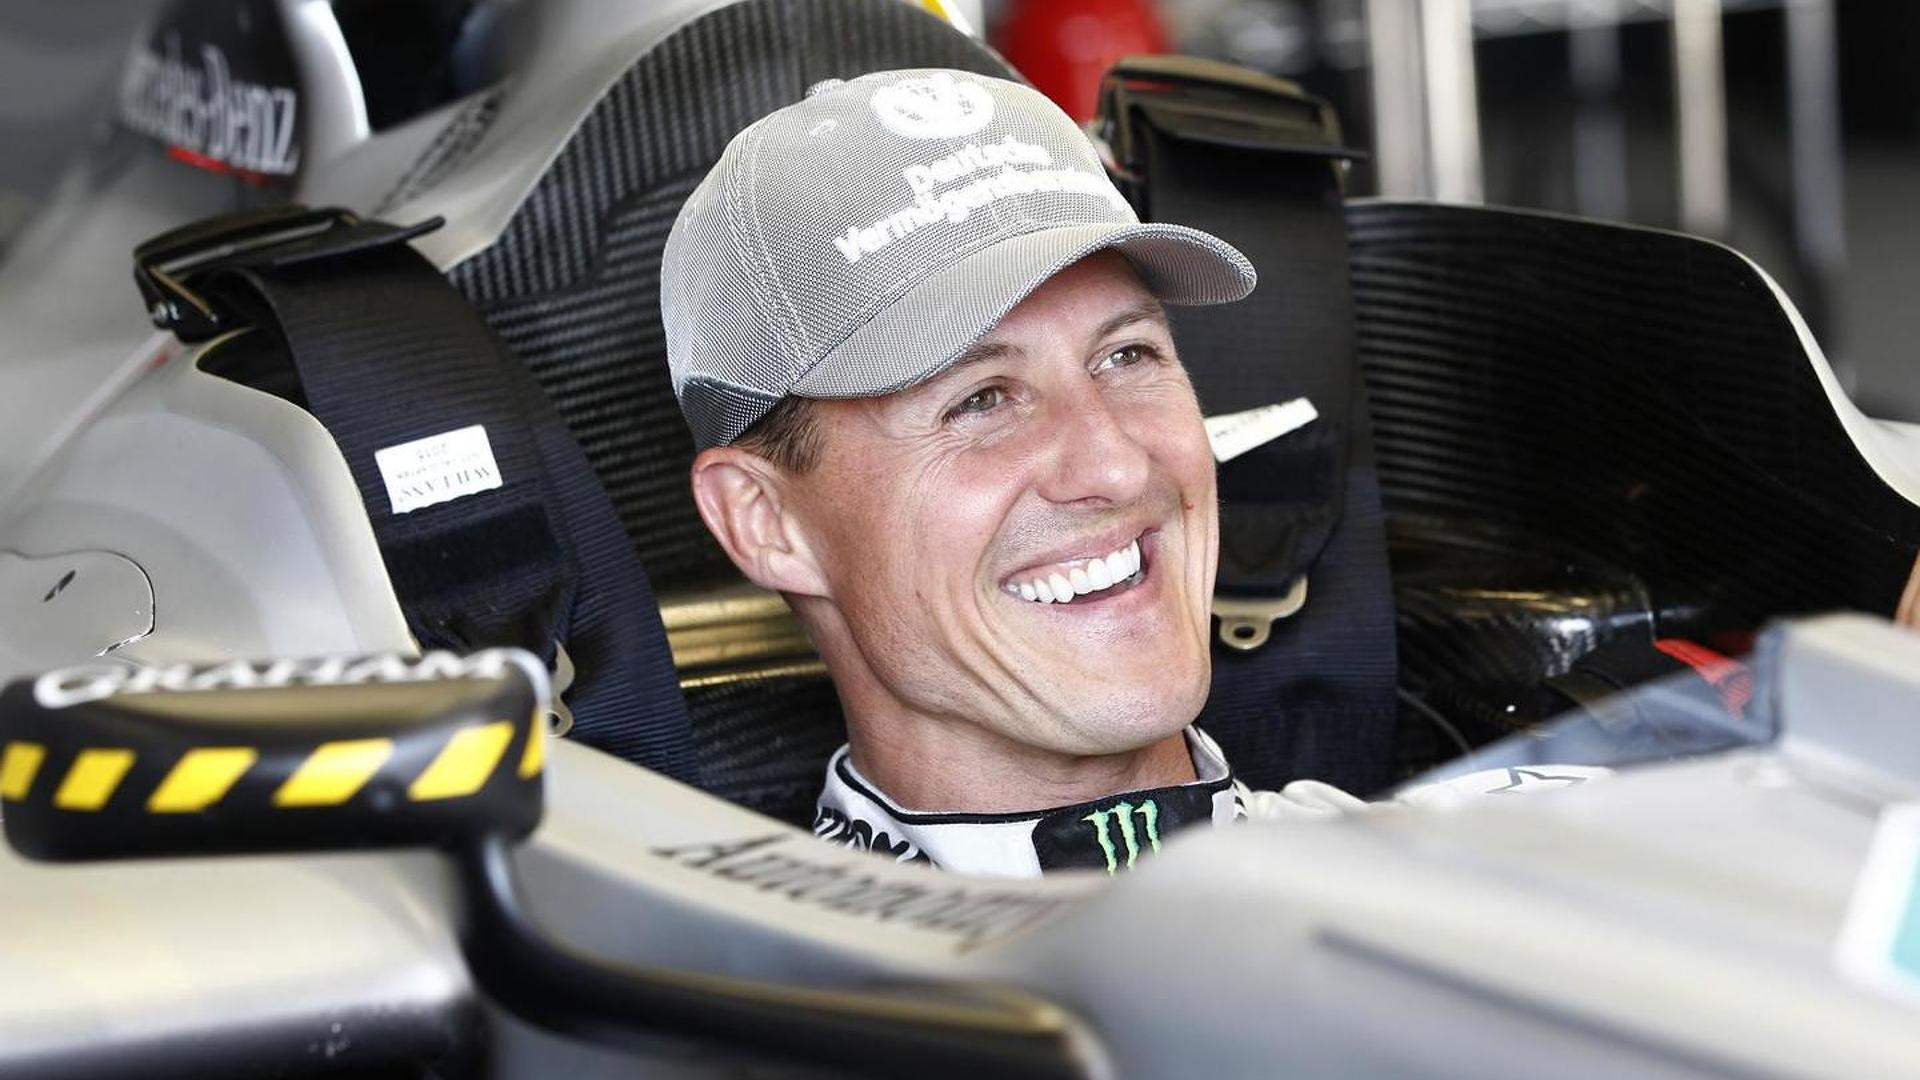 Schumacher 'deserves support' says Mercedes' Haug